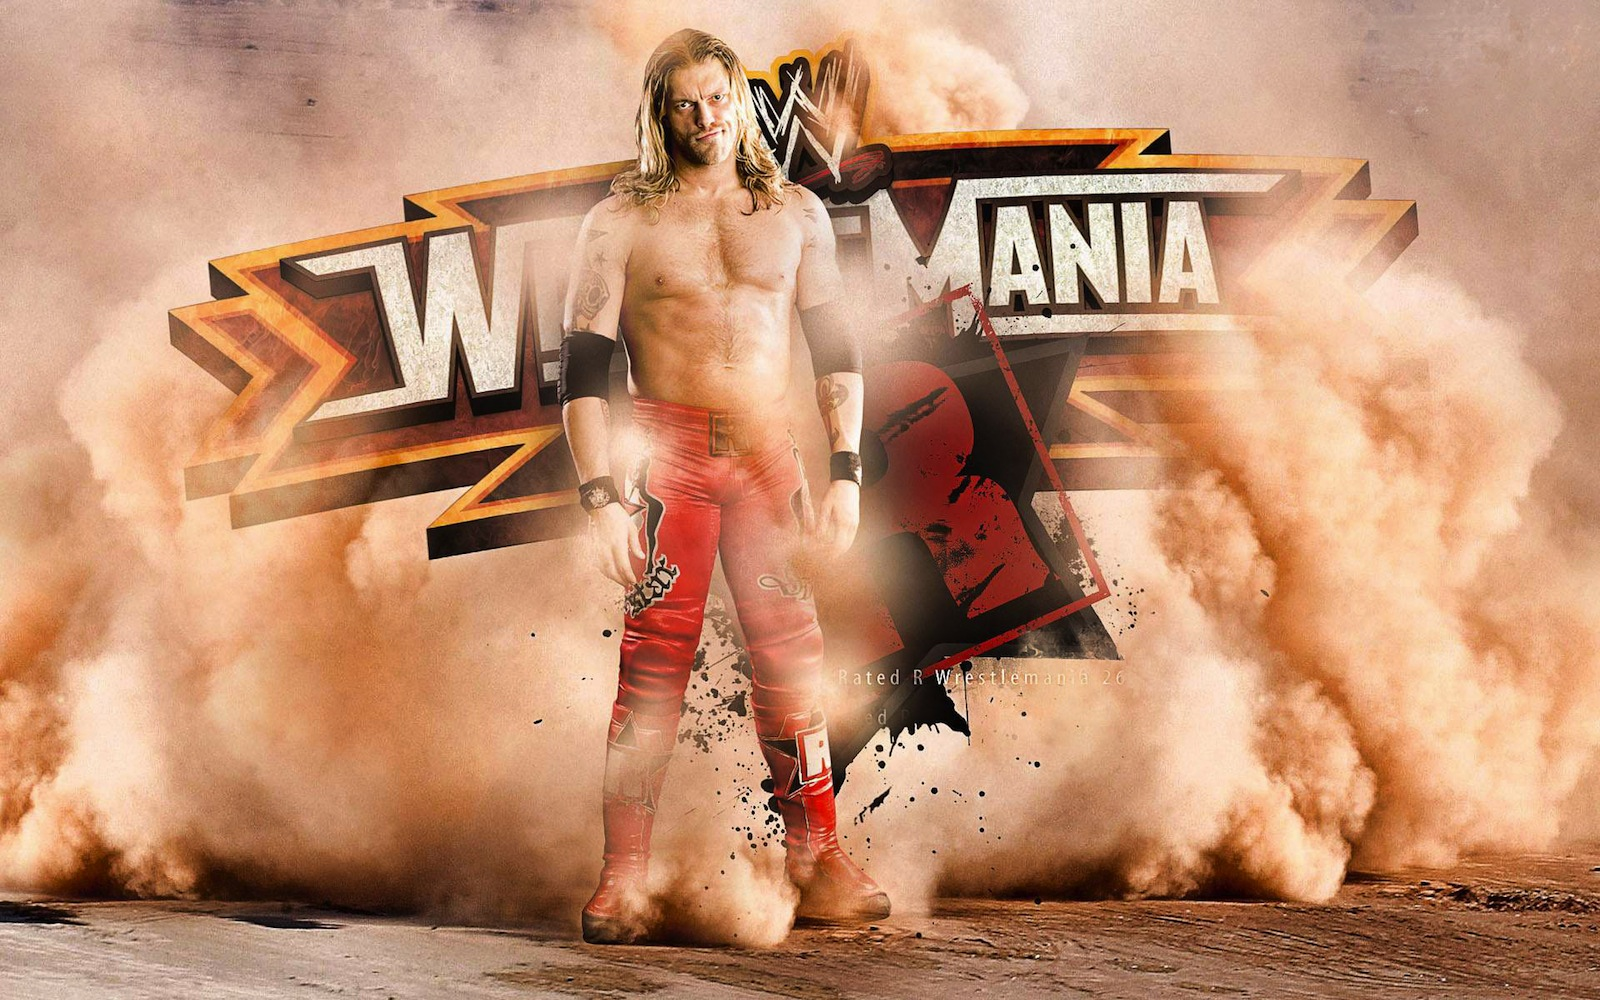 http://3.bp.blogspot.com/-mYo3_5akqjw/T_k-FaLq16I/AAAAAAAAA6E/Y_bS_eMeGVQ/s1600/Edge-Wrestlemania-Wallpapers.jpg